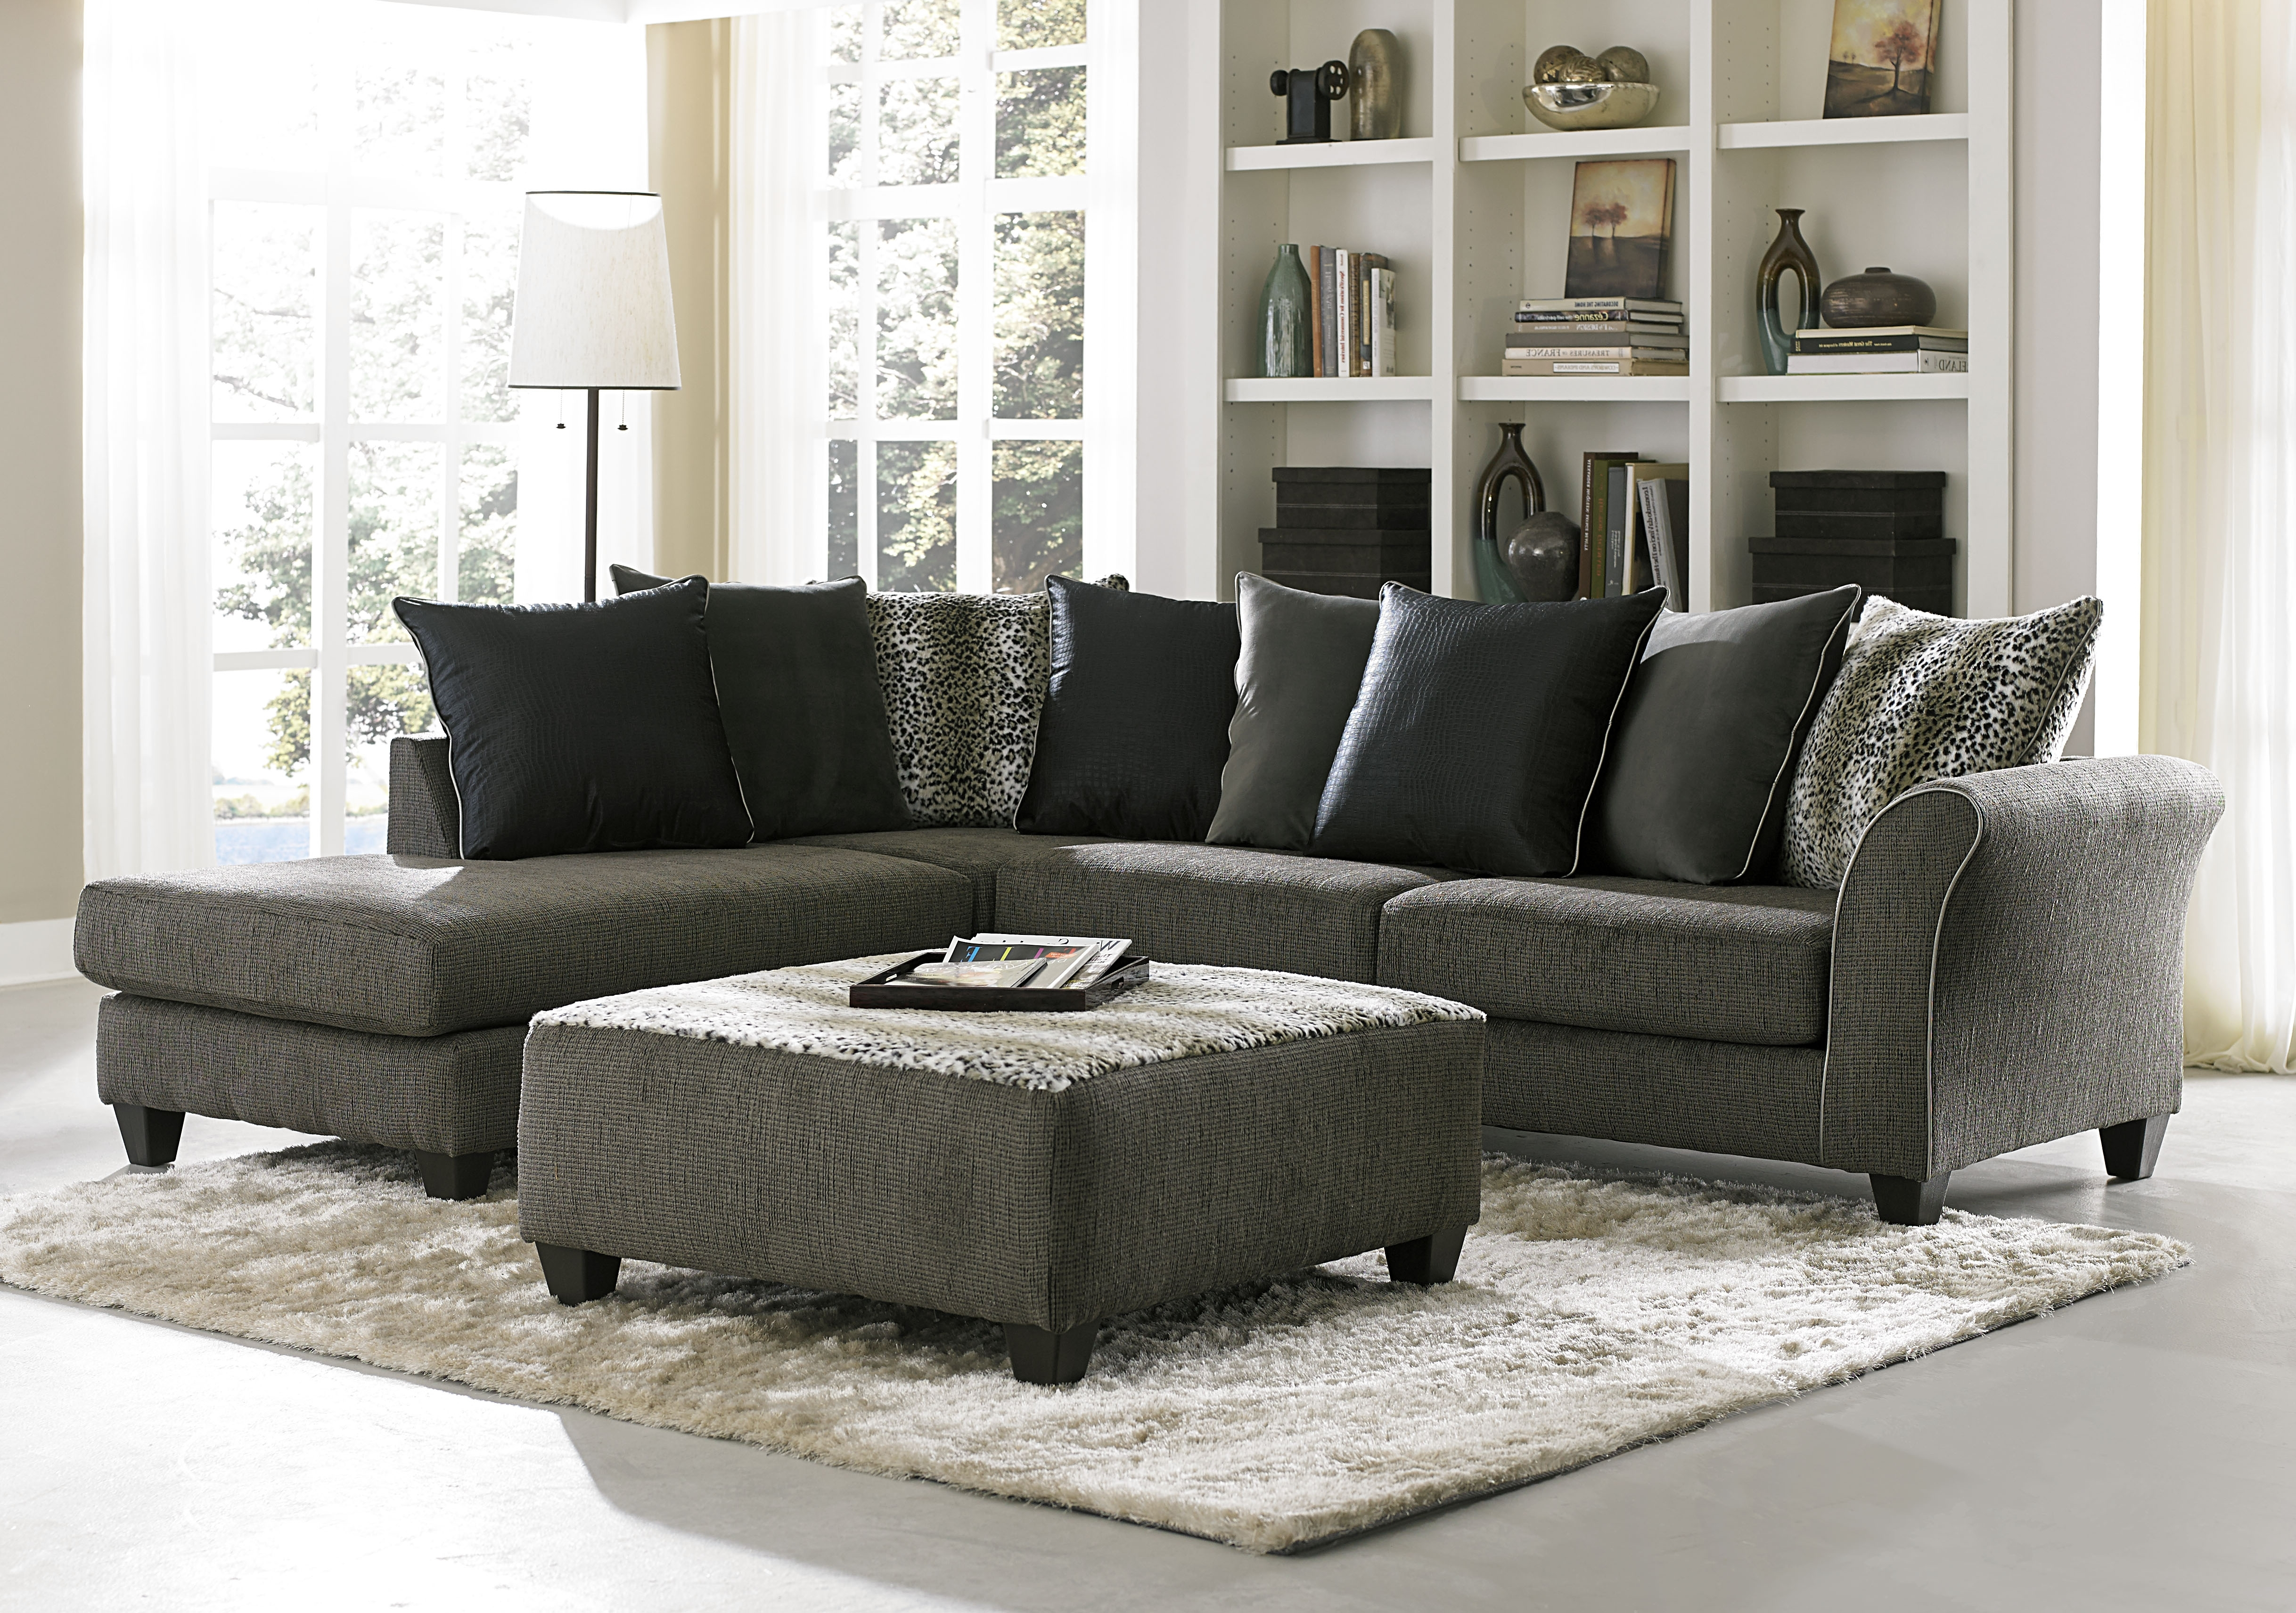 Recent Memphis Tn Sectional Sofas Regarding Furniture: American Freight Sectionals For Luxury Living Room (View 9 of 15)